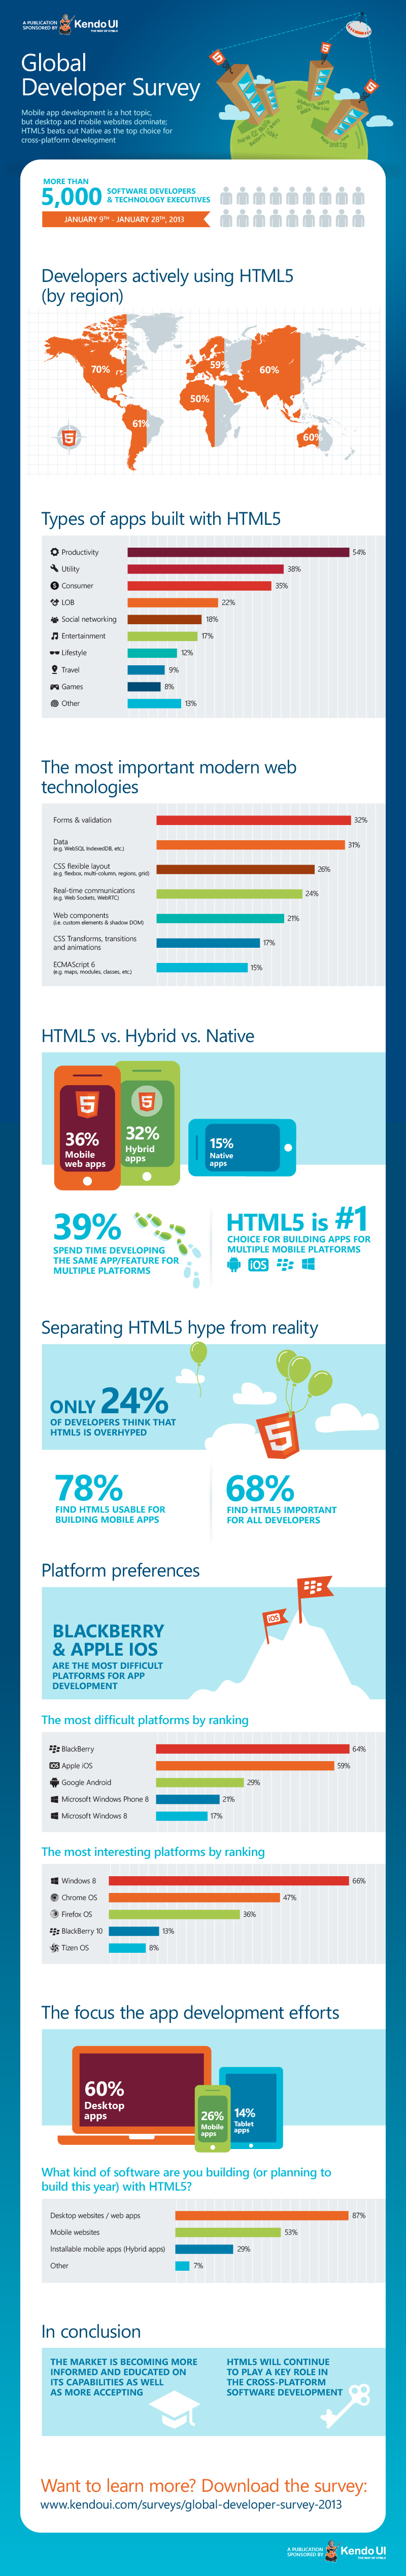 Trends-on-HTML5